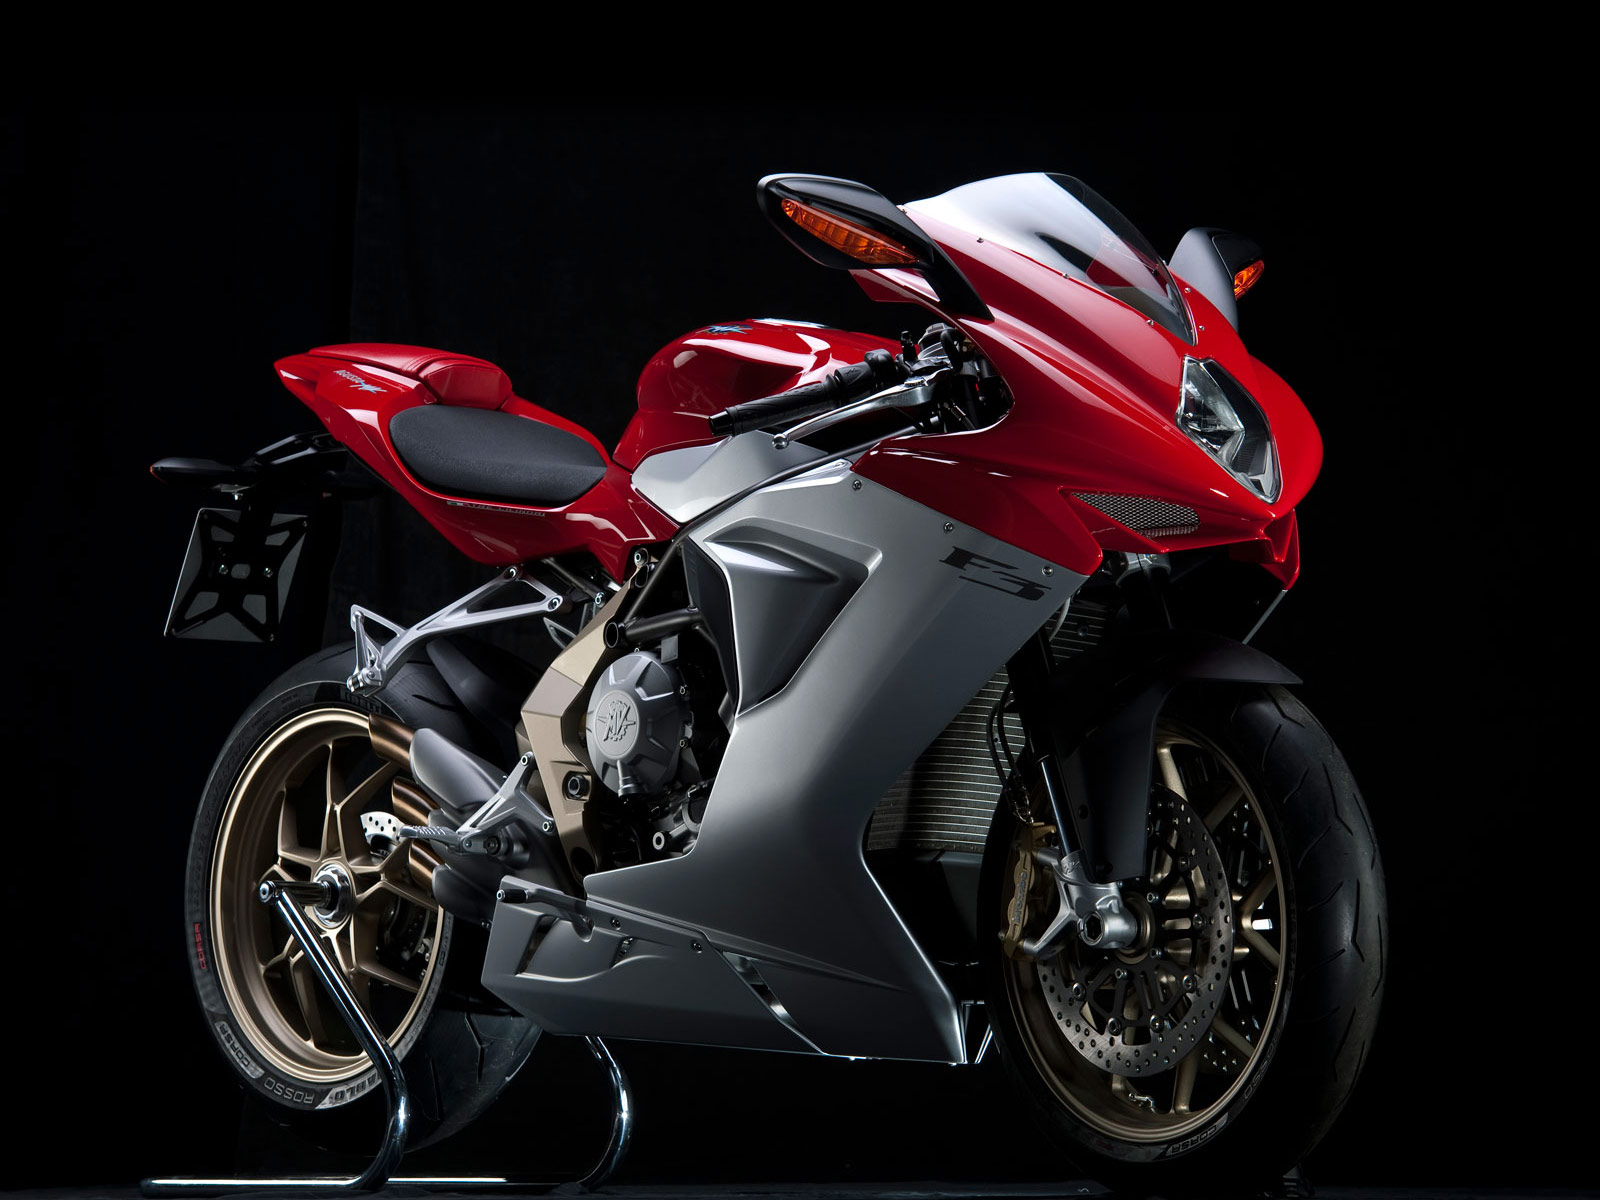 2012 mv agusta f3 motorcycle photos. Black Bedroom Furniture Sets. Home Design Ideas